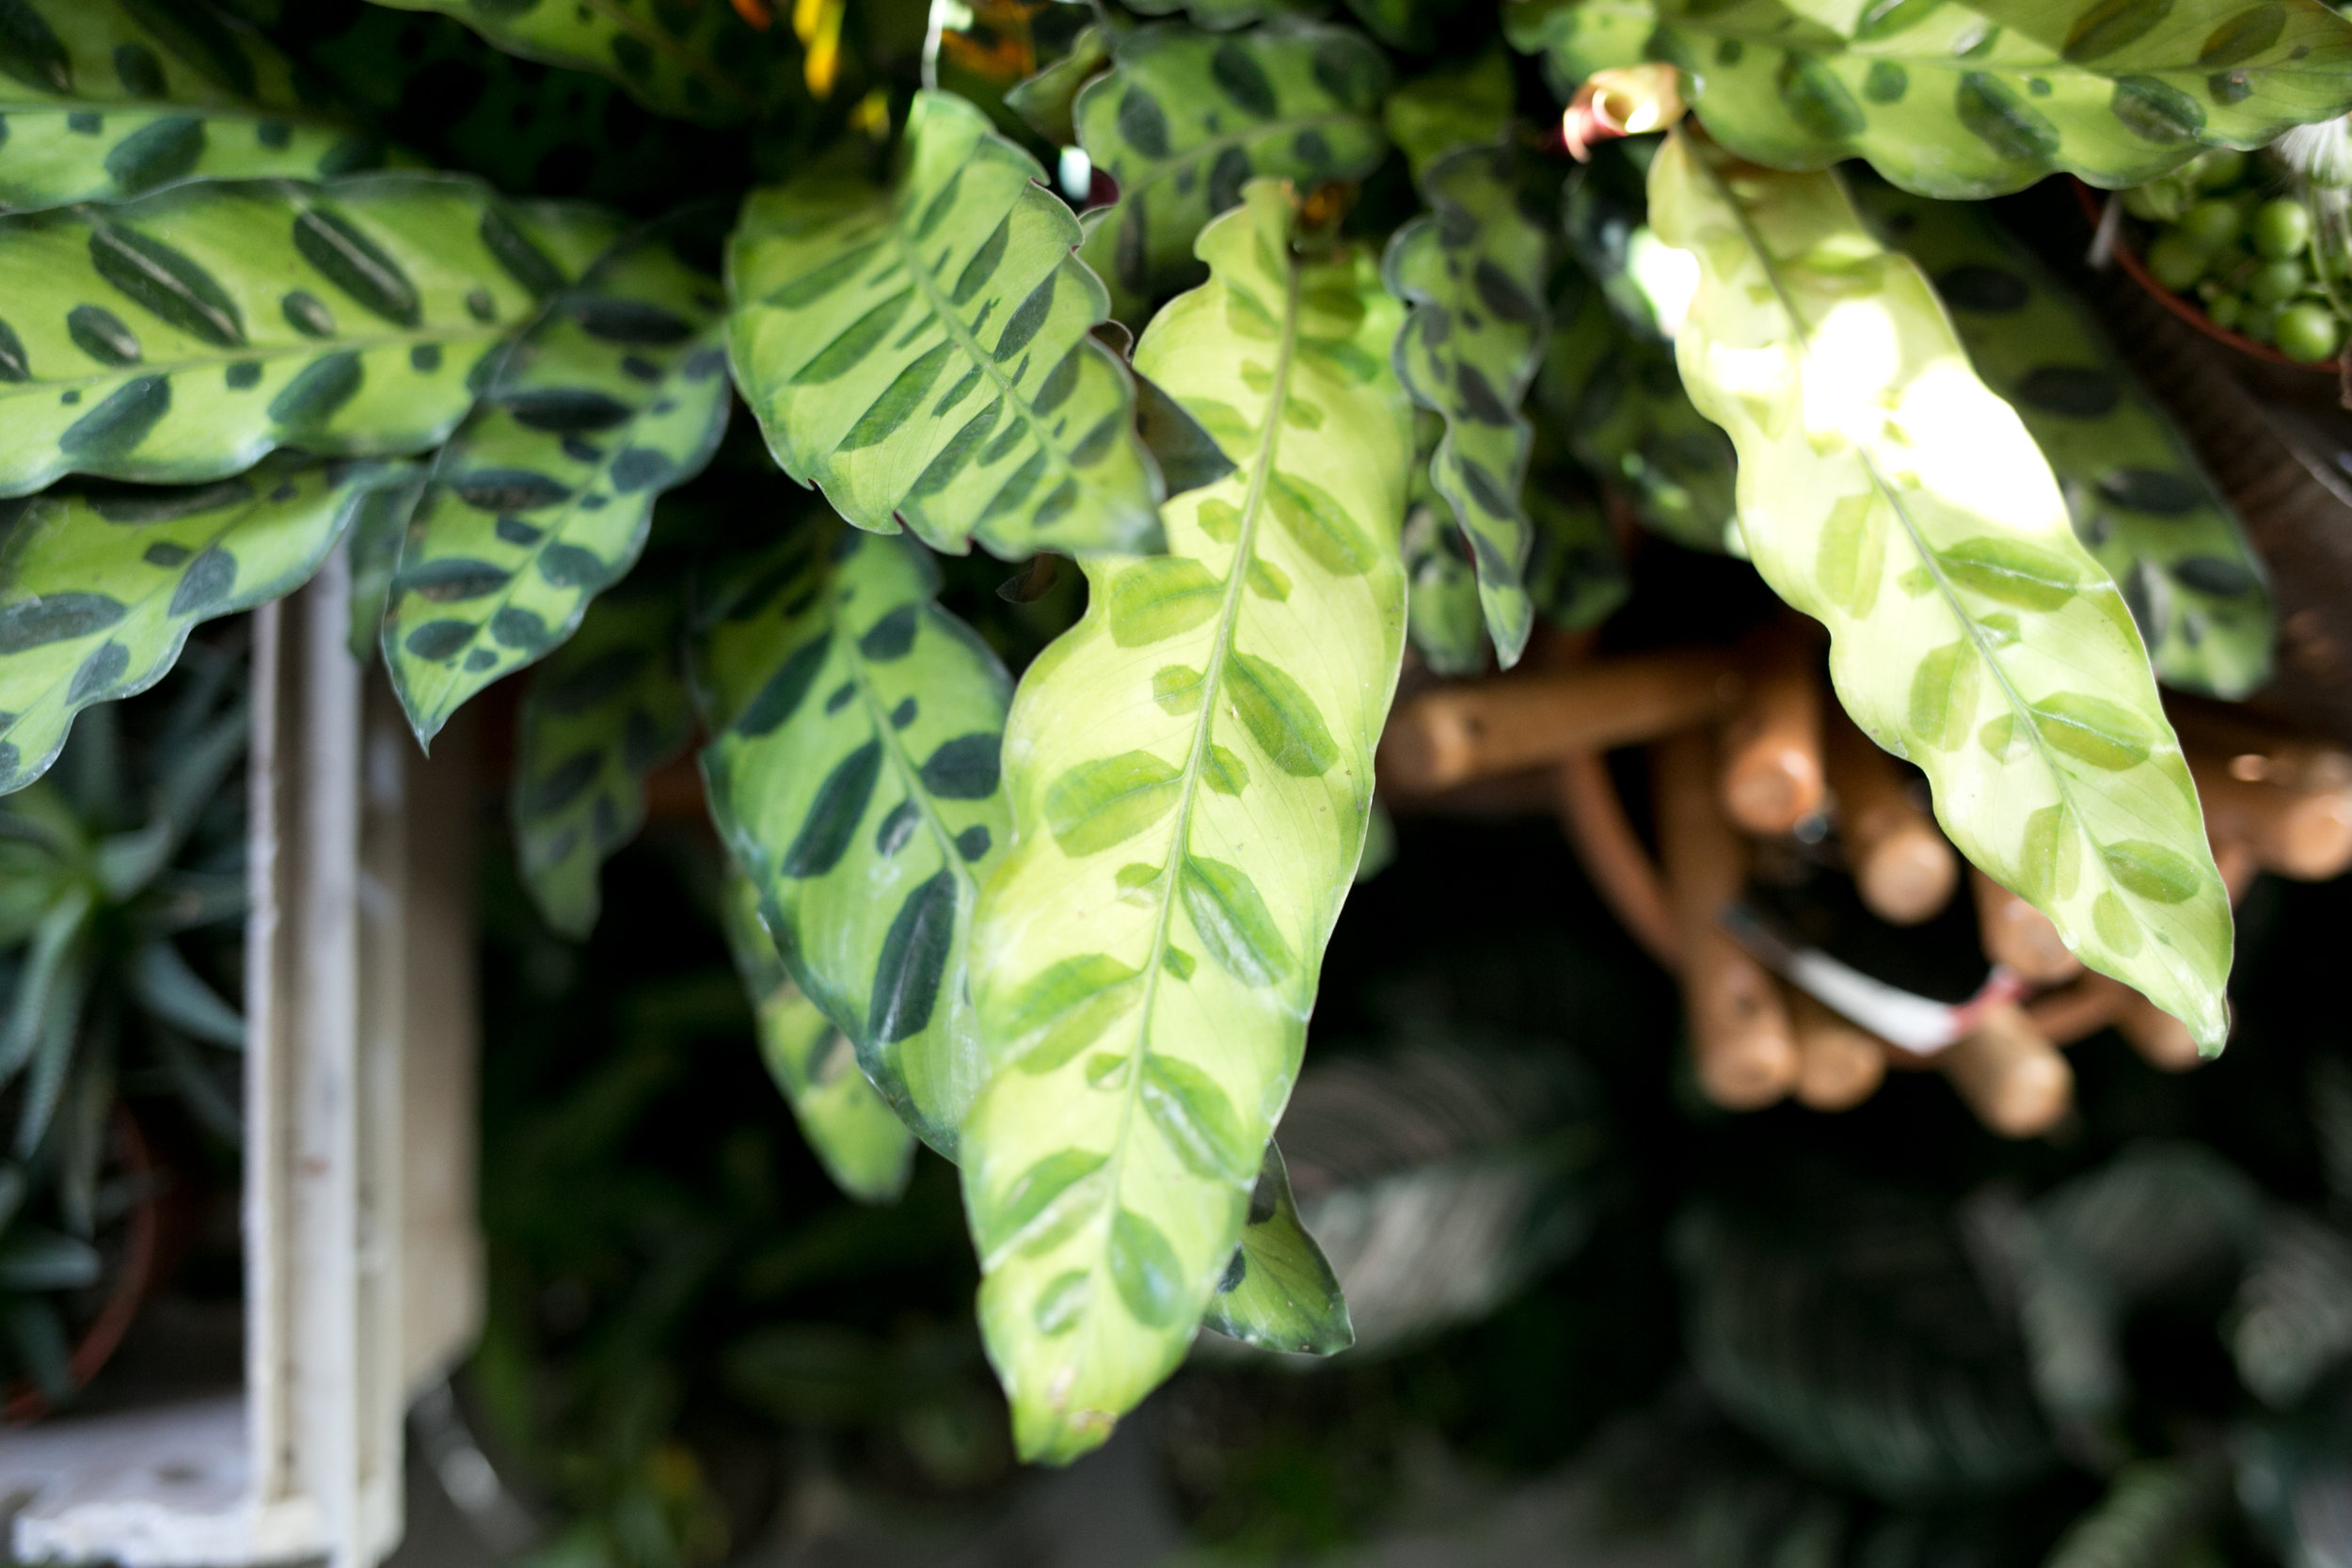 A general rule we follow is where there are humidity trays, let there be ventilation. Tropical foliage plants that need humidity trays, like this Calathea species, need ventilation too, especially in winter.